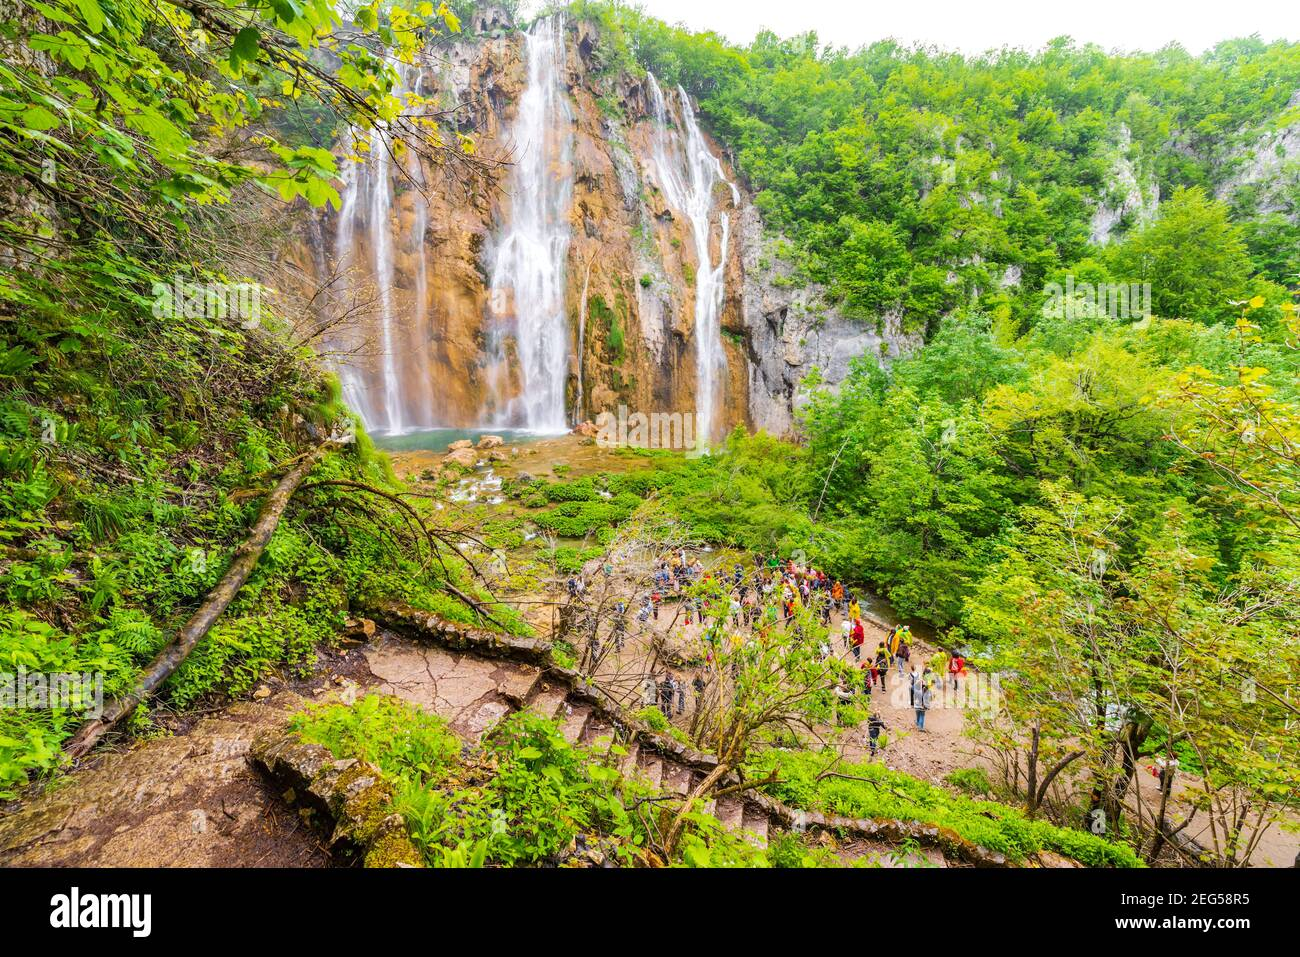 Veliki slap Big waterfall famous place Spring season Green forest Plitvice lakes Croatia Europe waterflow water flowing flow view from above elevated Stock Photo